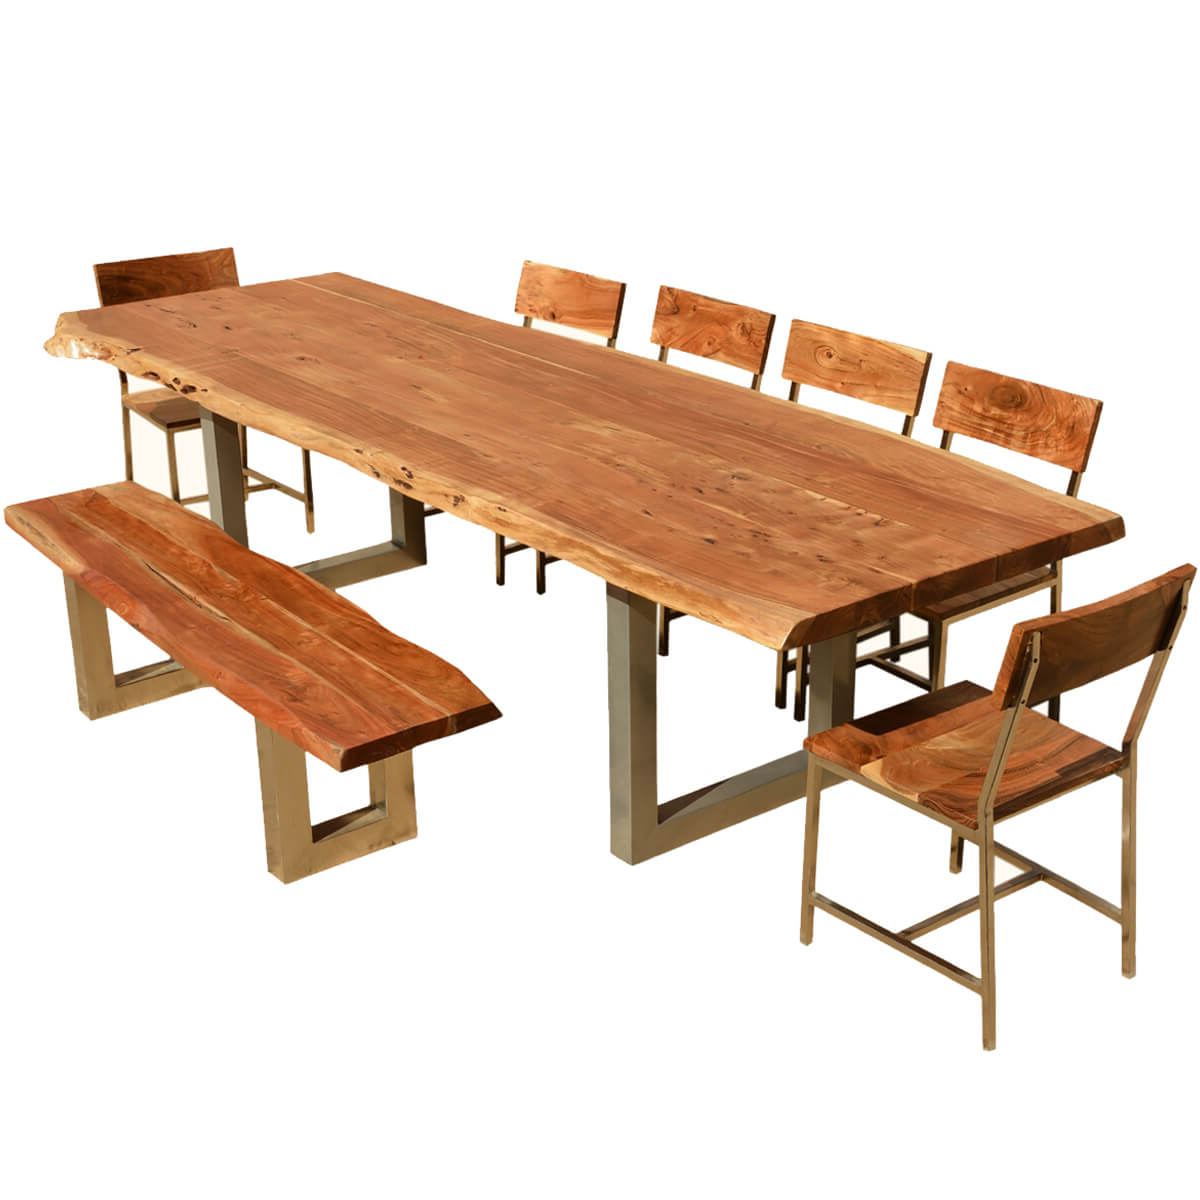 "Widely Used Unique Acacia Wood Dining Tables Regarding 117"" Live Edge Dining Table W 6 Chairs & Bench – Acacia Wood & Iron (Gallery 20 of 30)"